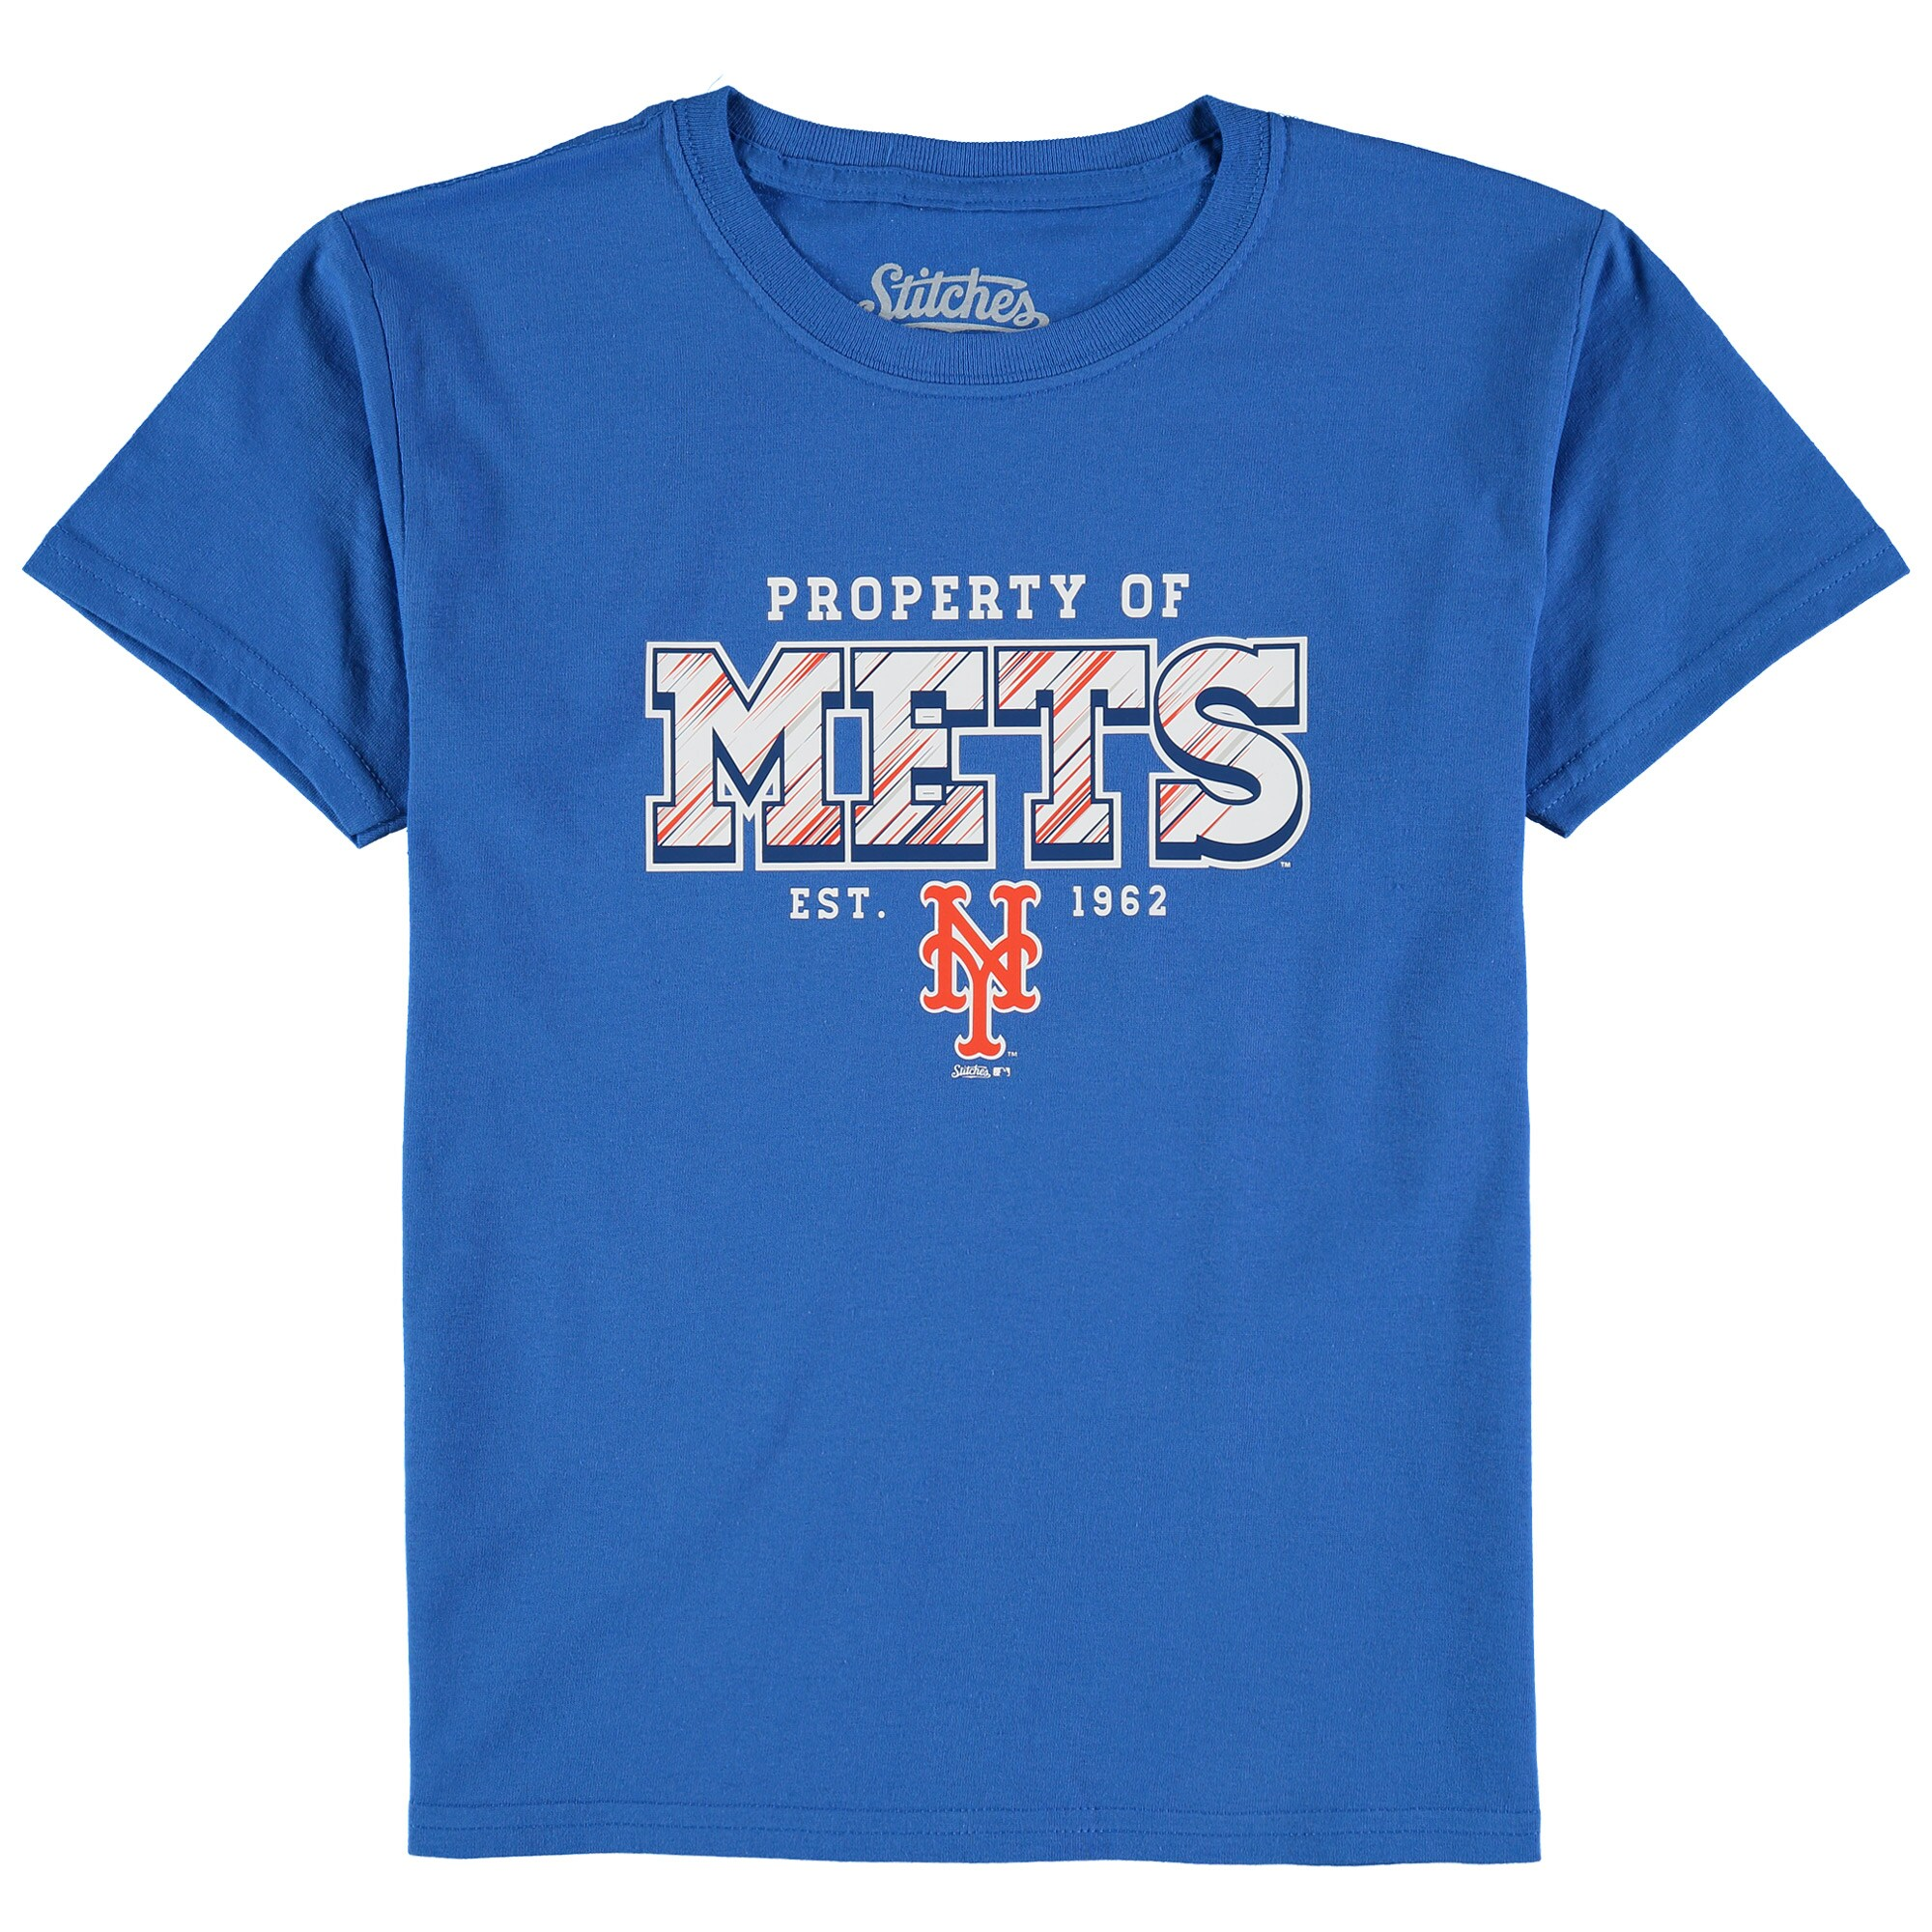 New York Mets Stitches Youth Property Of Team T-Shirt - Royal